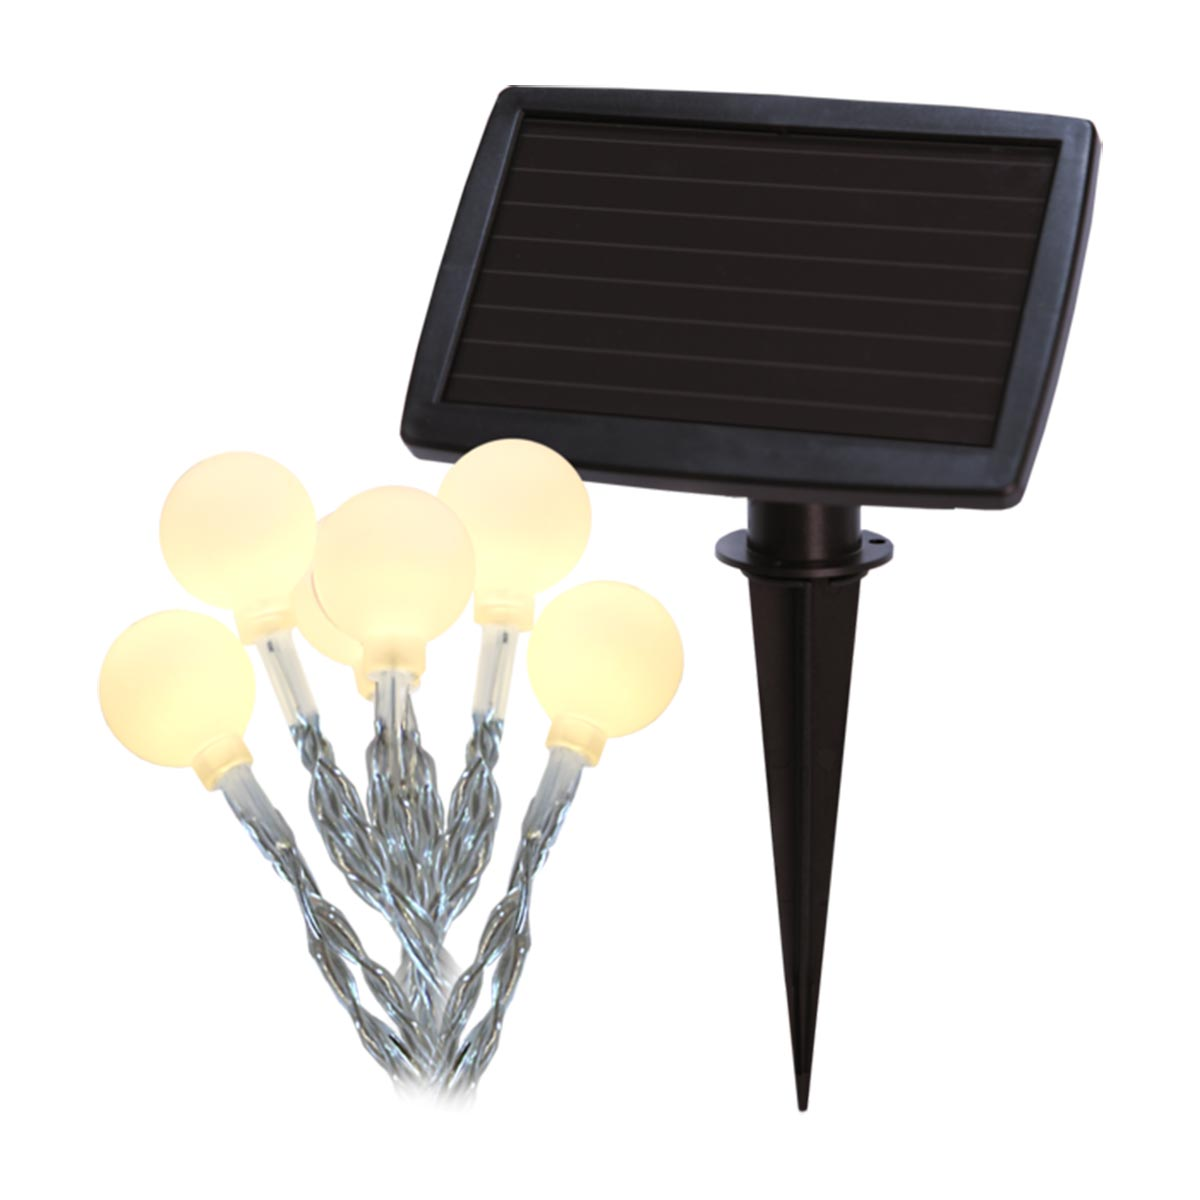 led solar lichterkette globini 20 warmweissen mini globes. Black Bedroom Furniture Sets. Home Design Ideas